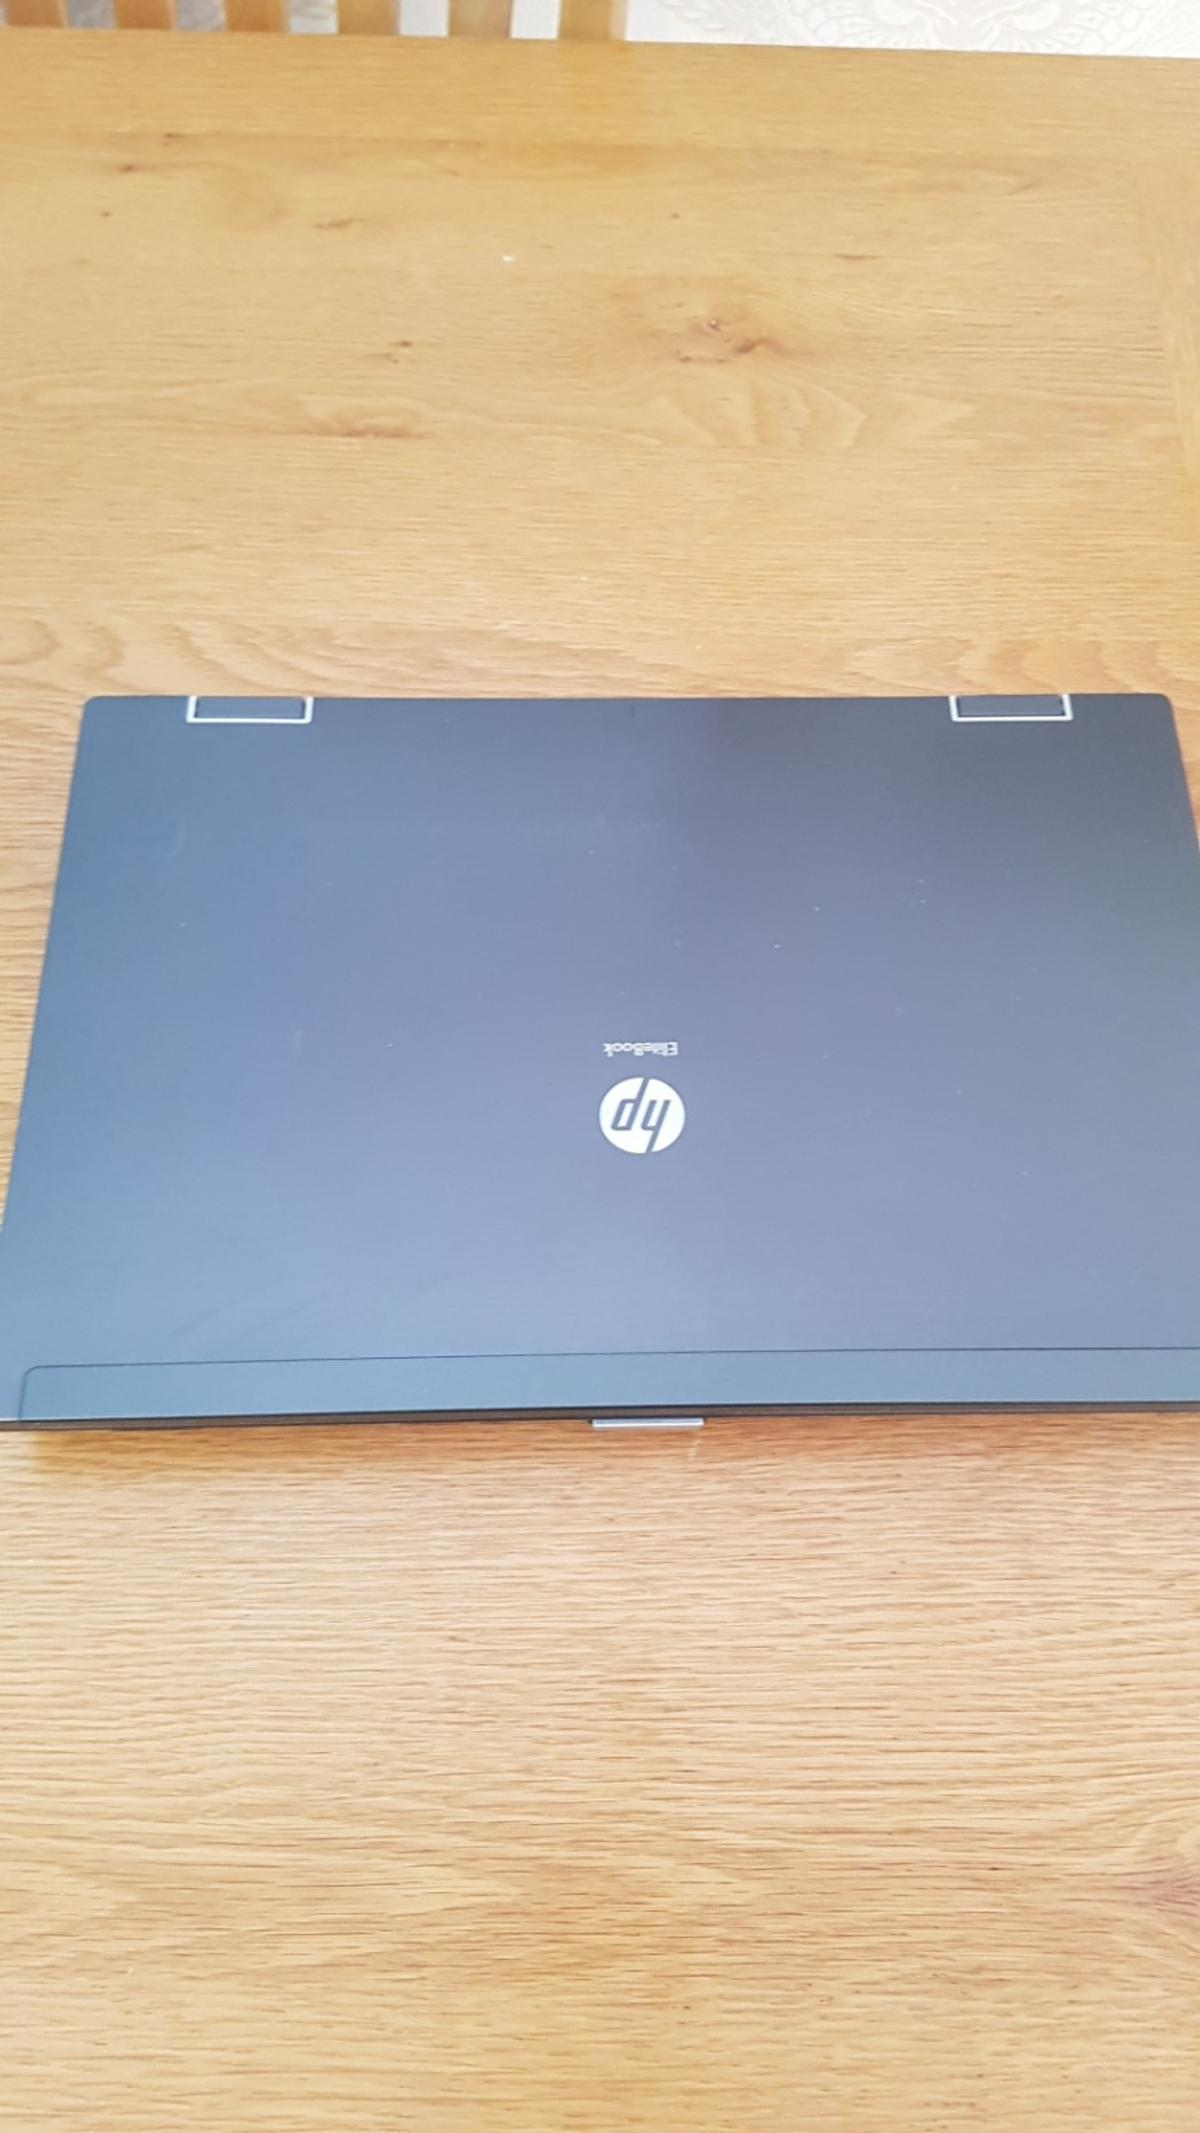 laptop hp elitebook 8540w in Oakengates for £130 00 for sale - Shpock